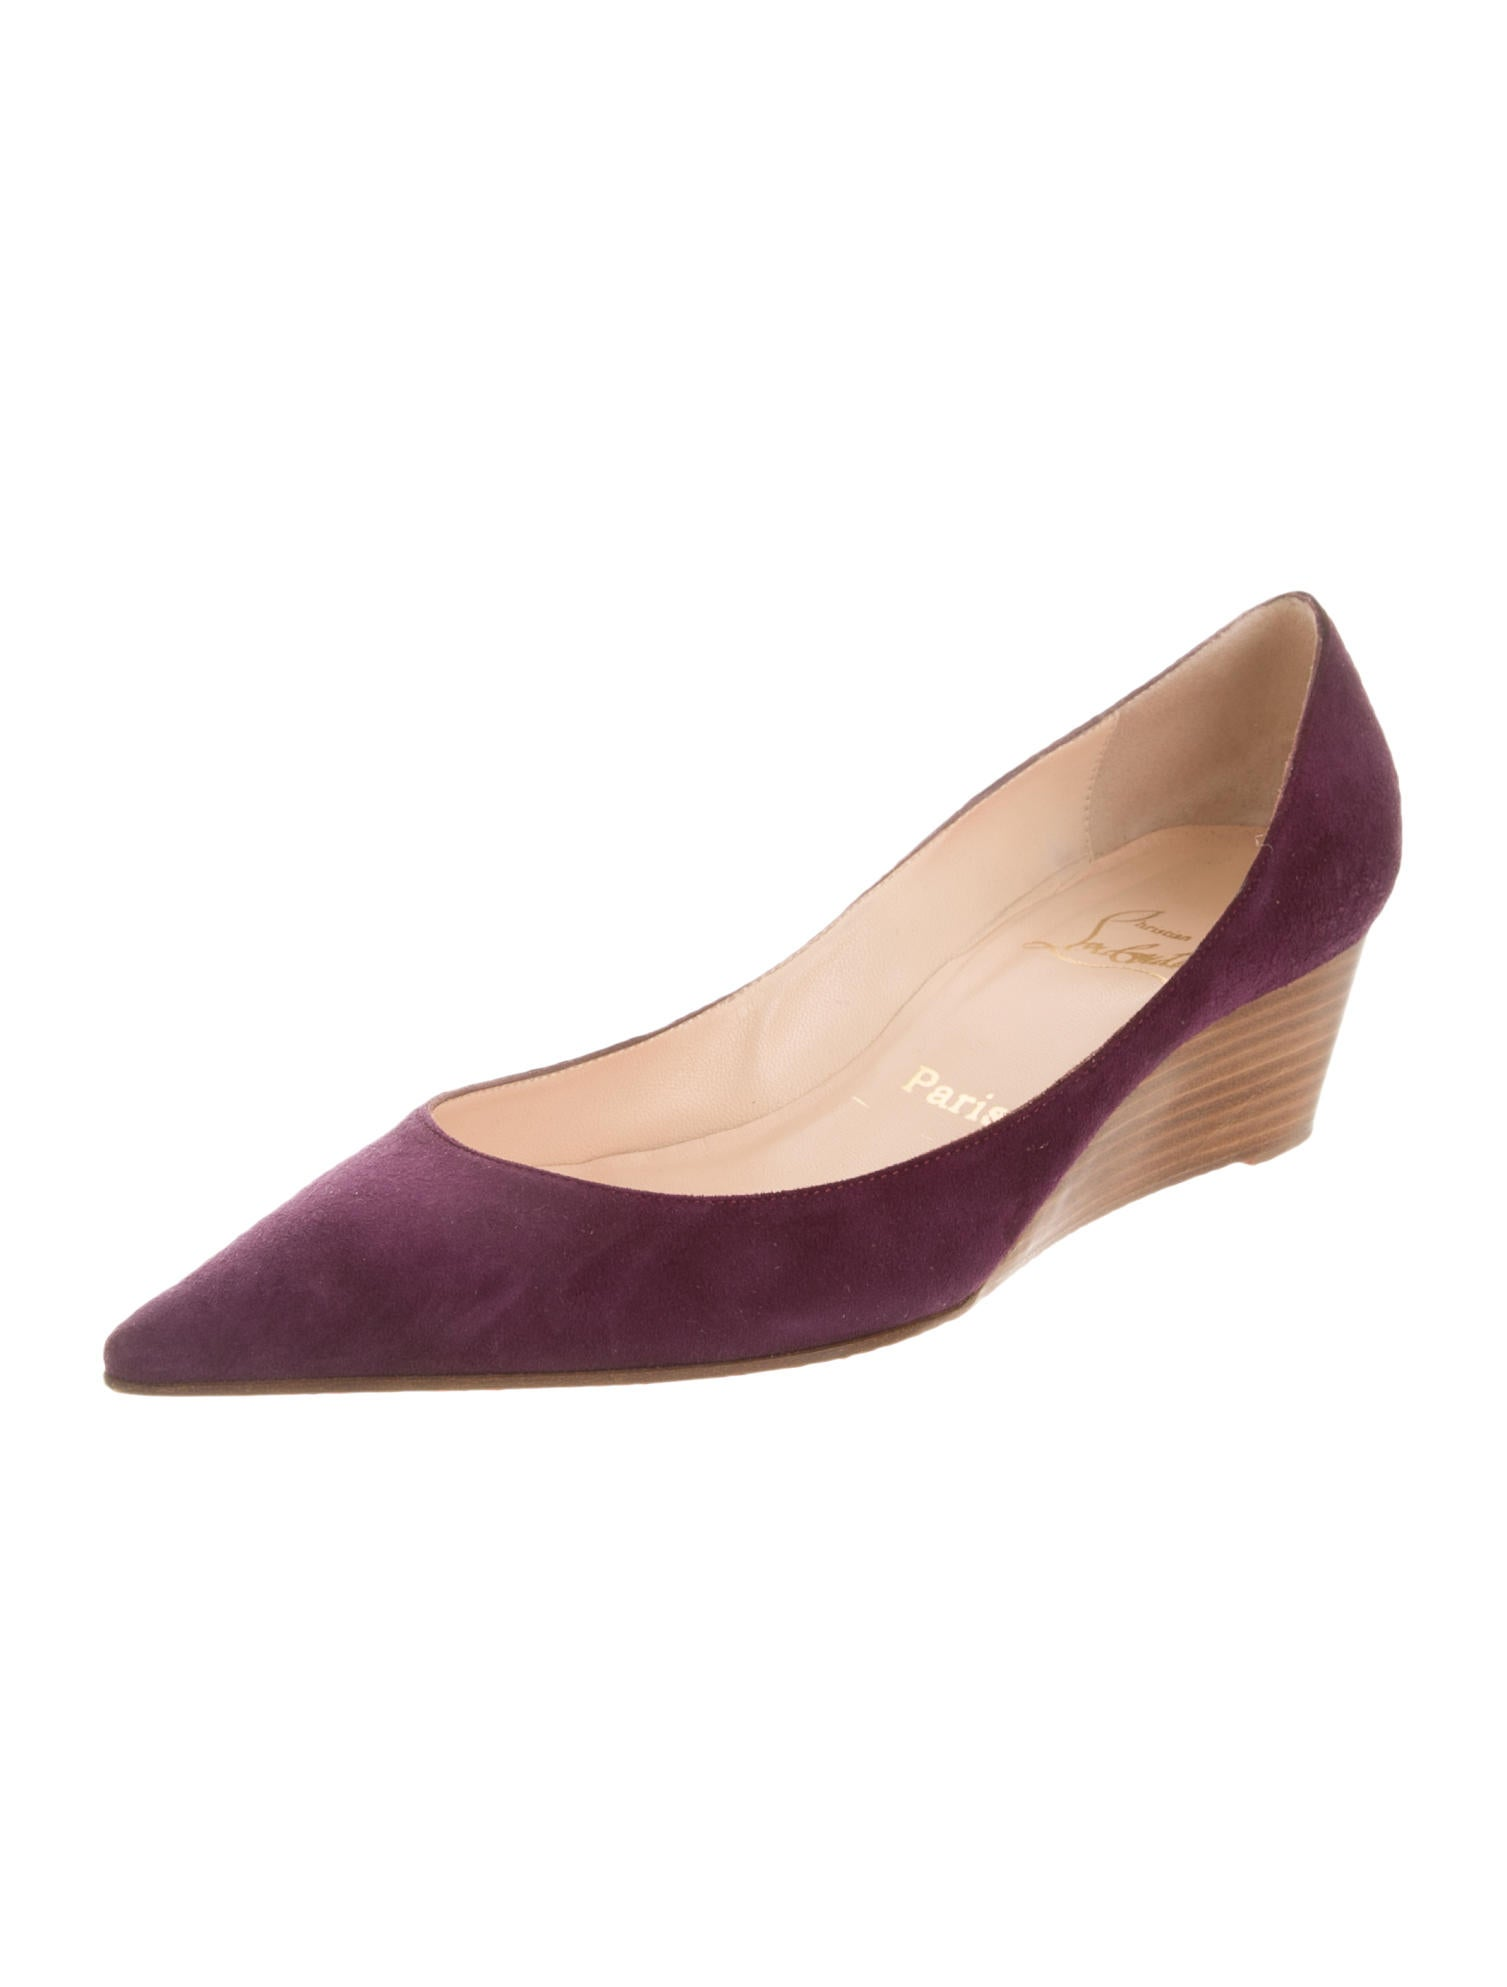 christian louboutin l evidence pointed toe wedges shoes